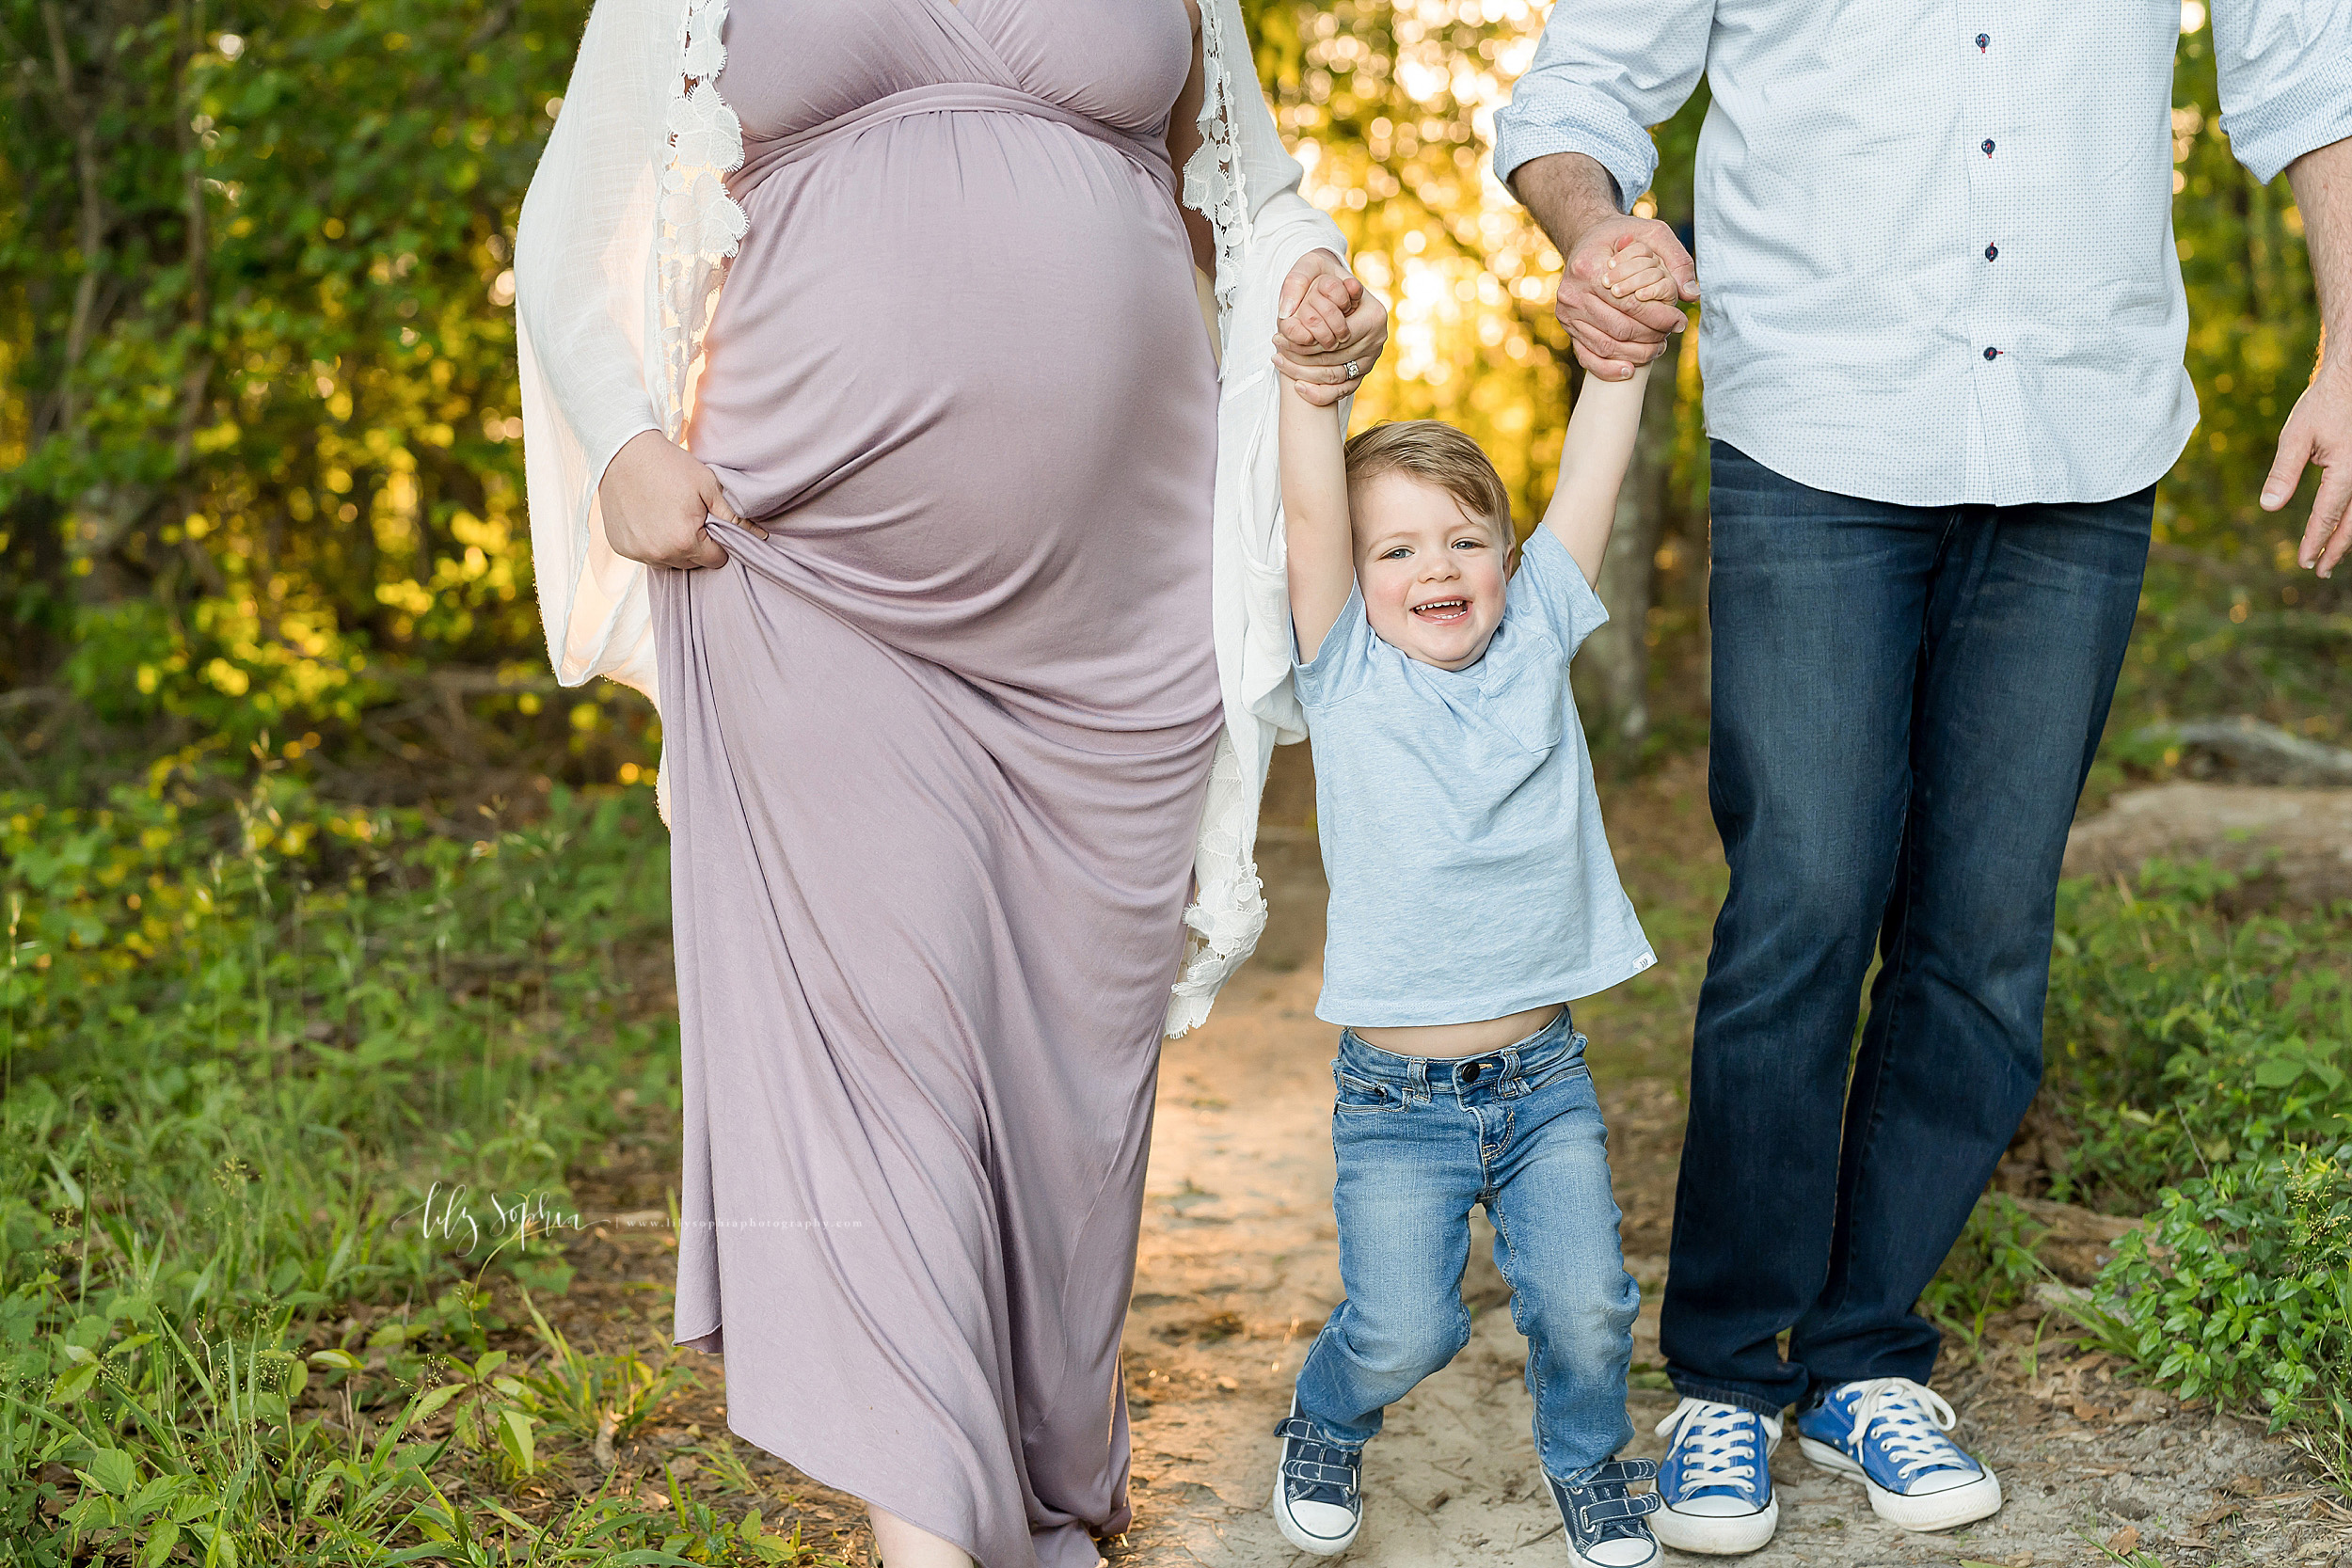 atlanta-brookhaven-decatur-candler-park-sandy-springs-buckhead-virginia-highlands-west-end-decatur-lily-sophia-photography-family-big-brother-expecting-newborn-baby-girl-couples-family-maternity-outdoor-session_1596.jpg